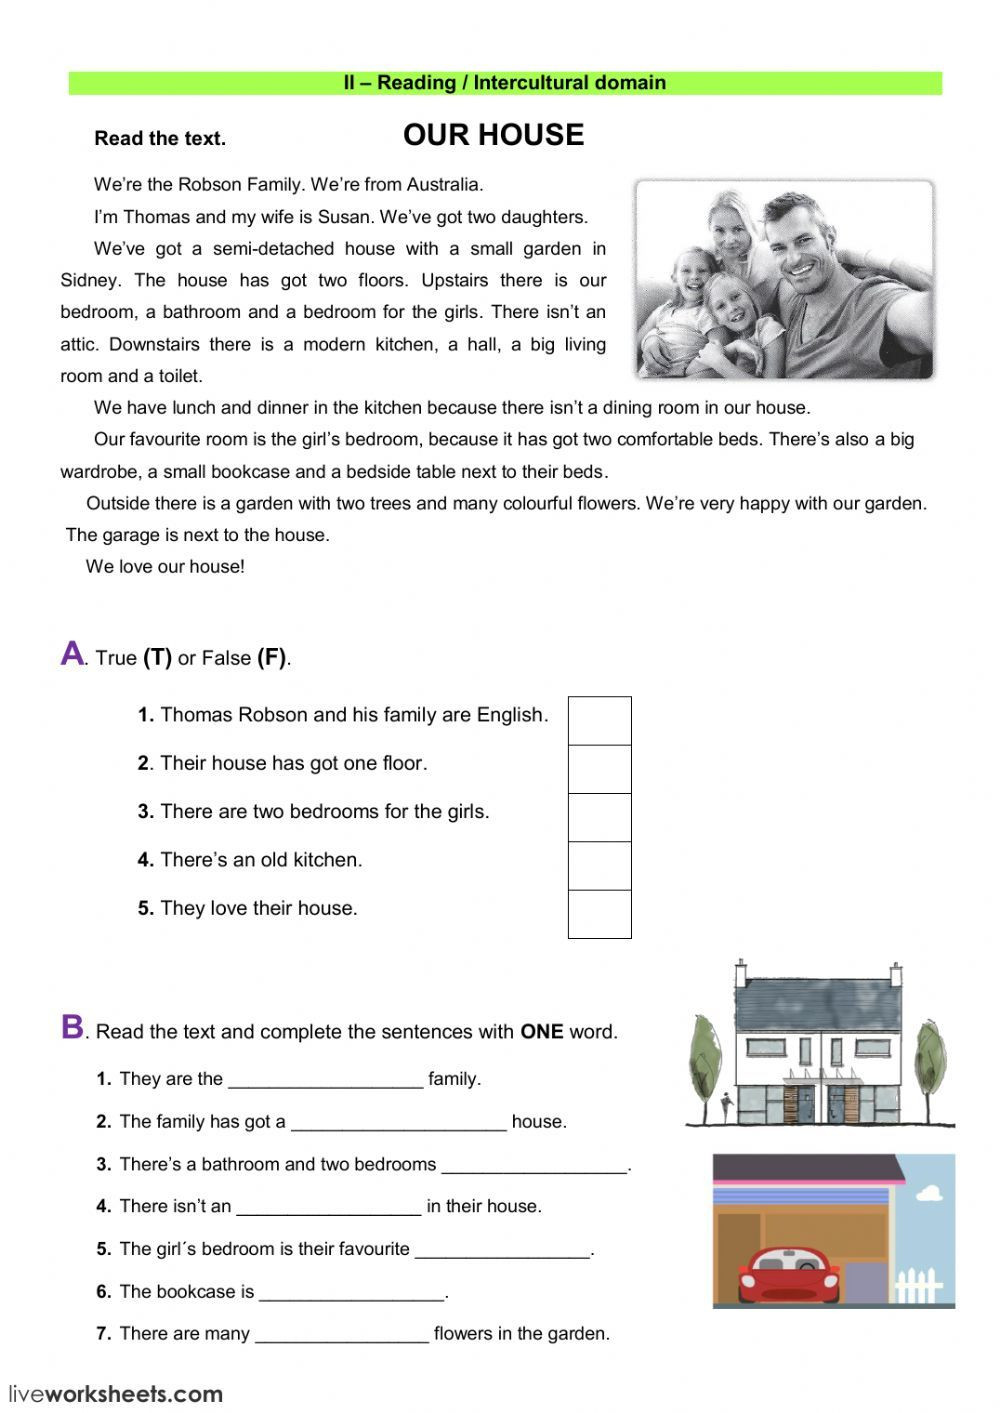 Test Taking Skills Worksheets Download the House Interactive and Able Worksheet You Can Do